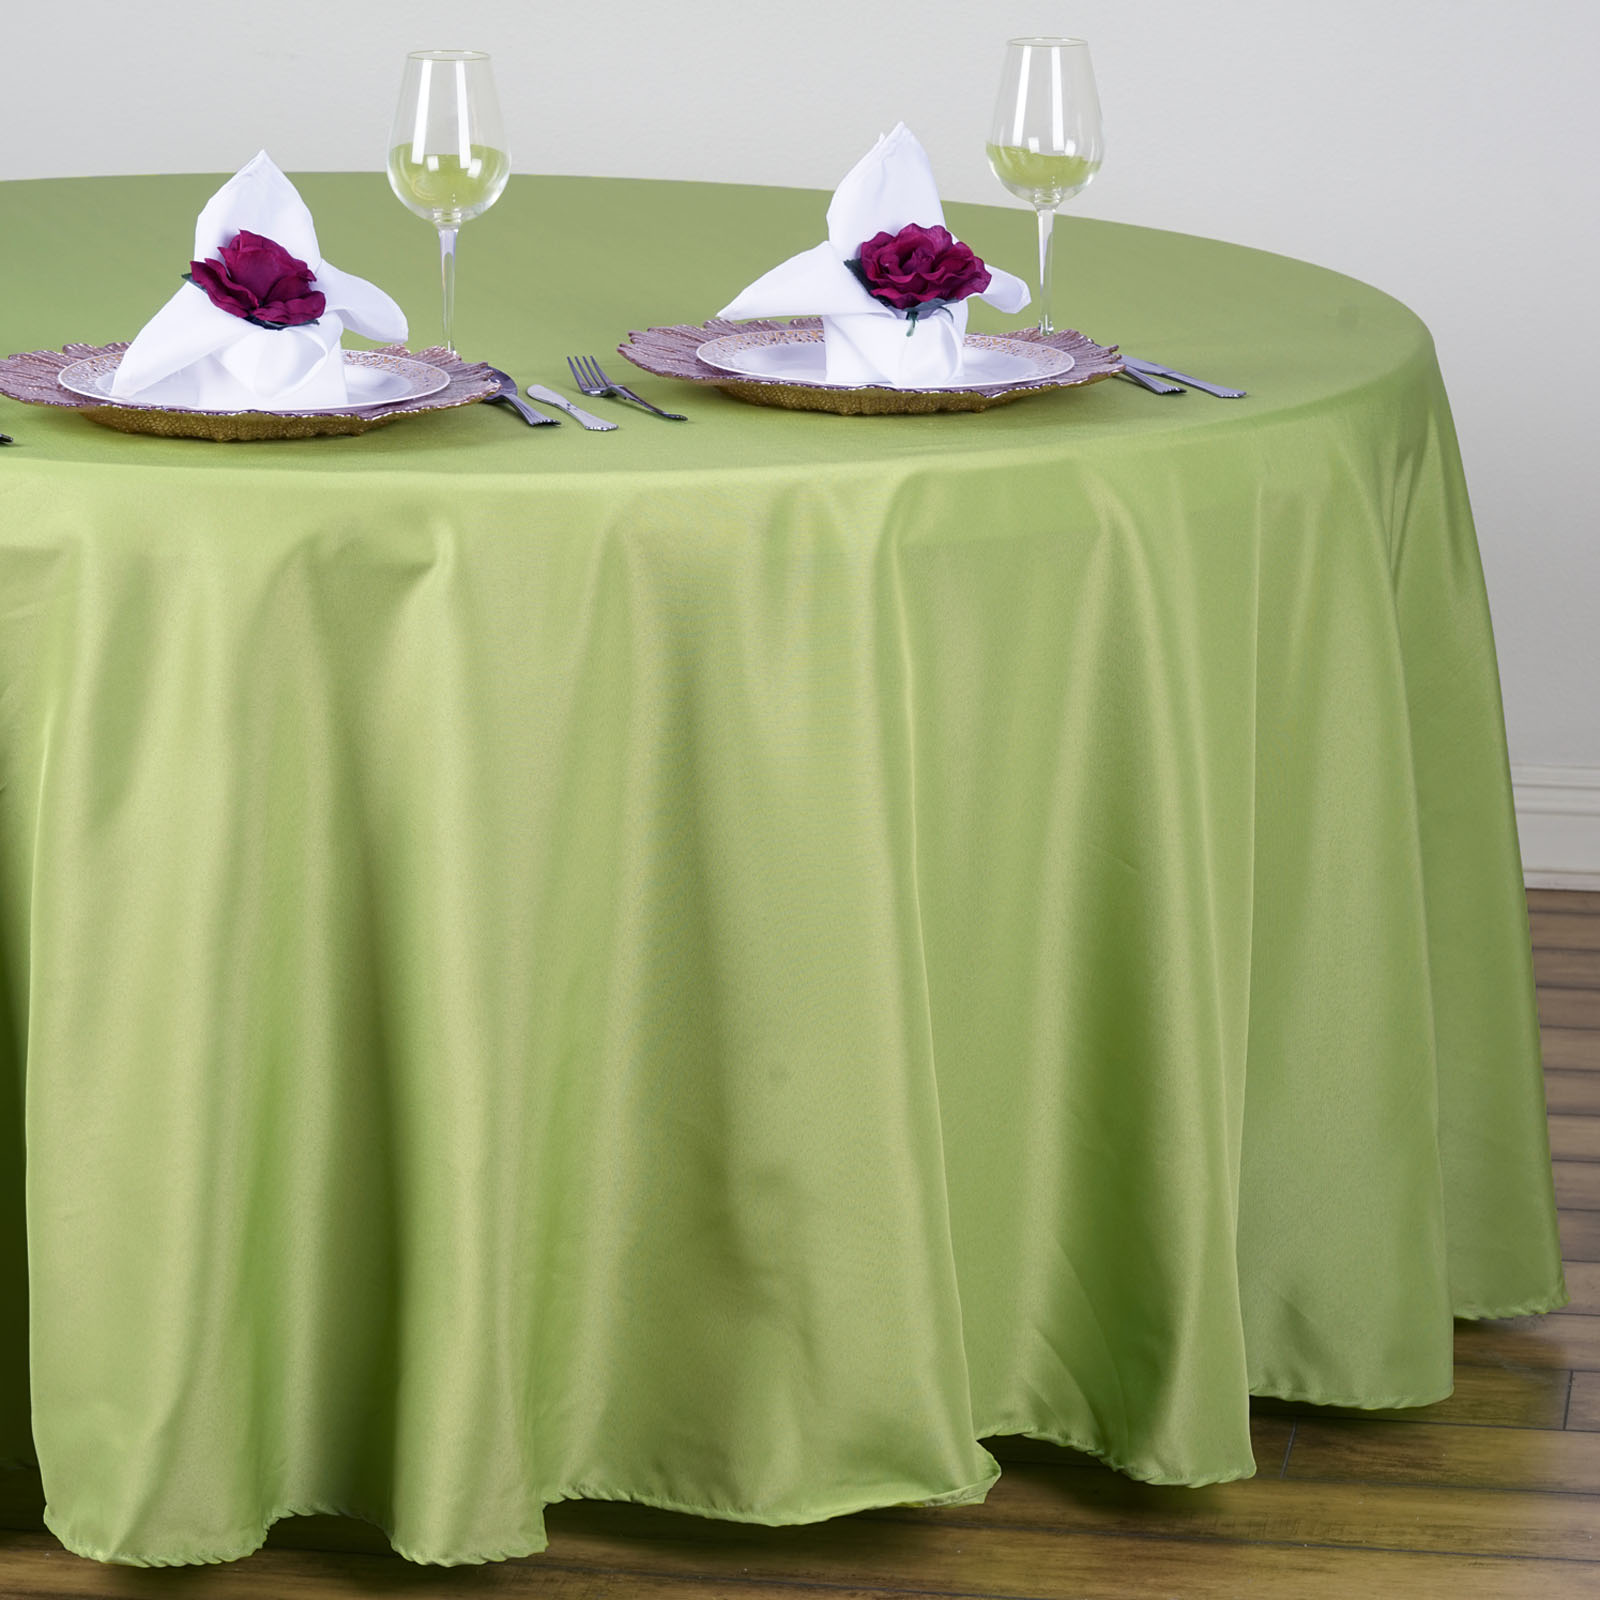 "Wholesale Wedding: 10 Pcs 108"" ROUND Wholesale Lot POLYESTER TABLECLOTHS"